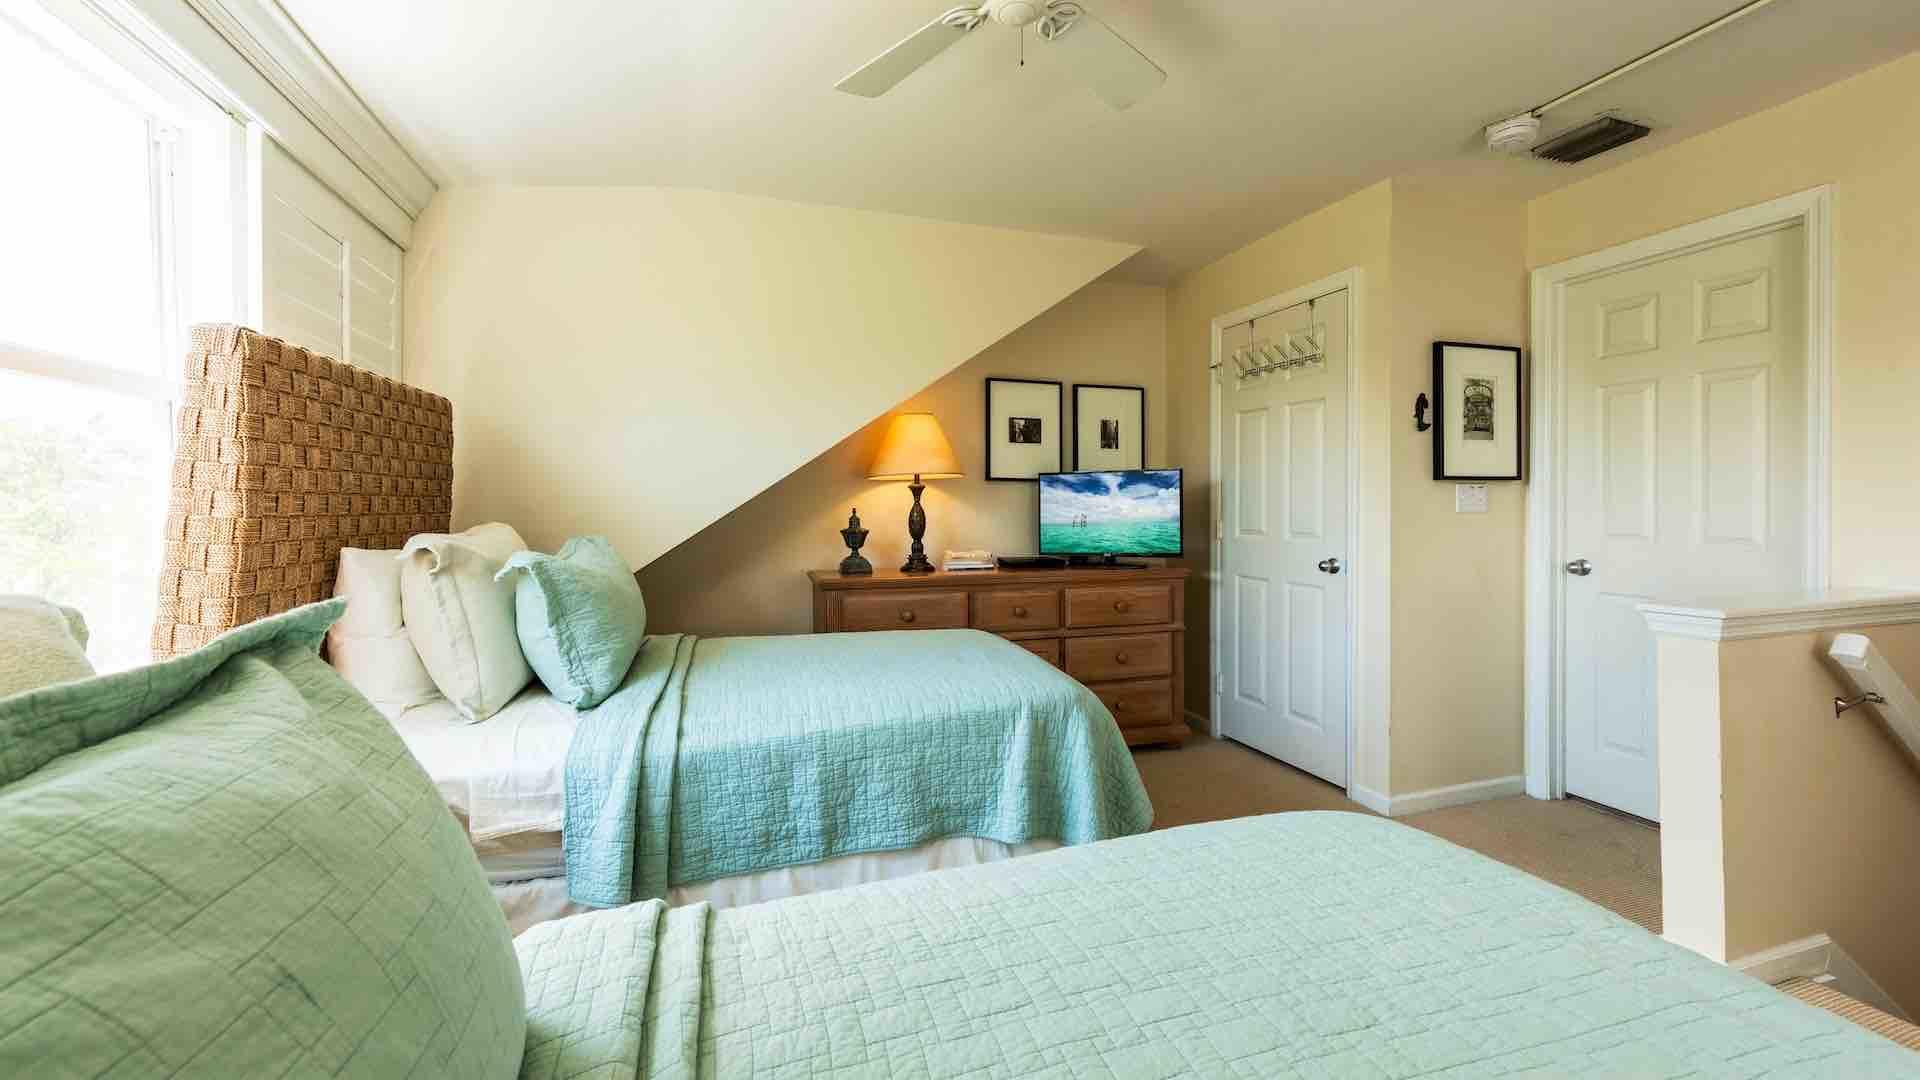 The second bedroom also has a flat screen TV, an overhead fan, and an en suite bathroom...